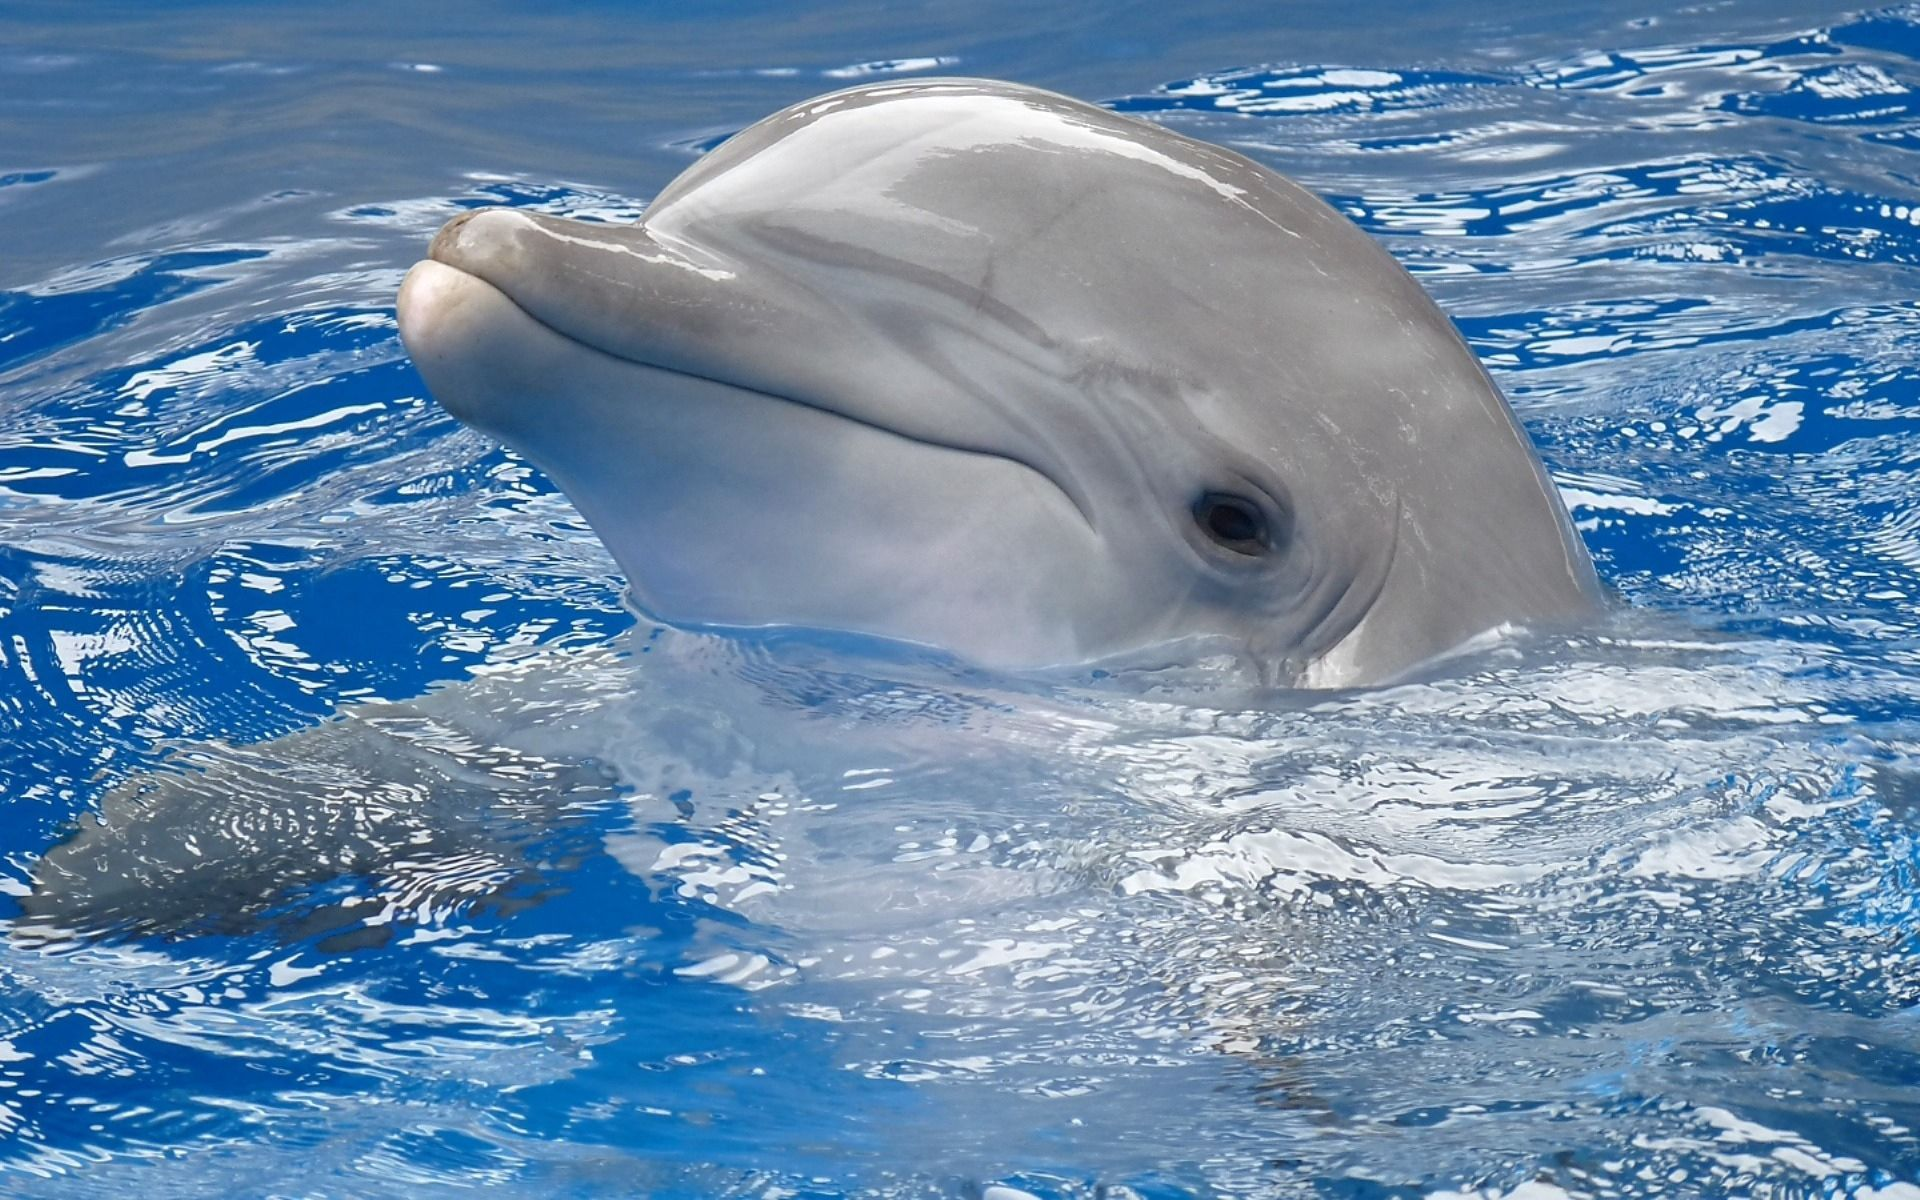 67172 download wallpaper Animals, Water, Head, To Swim, Swim, Dolphin screensavers and pictures for free